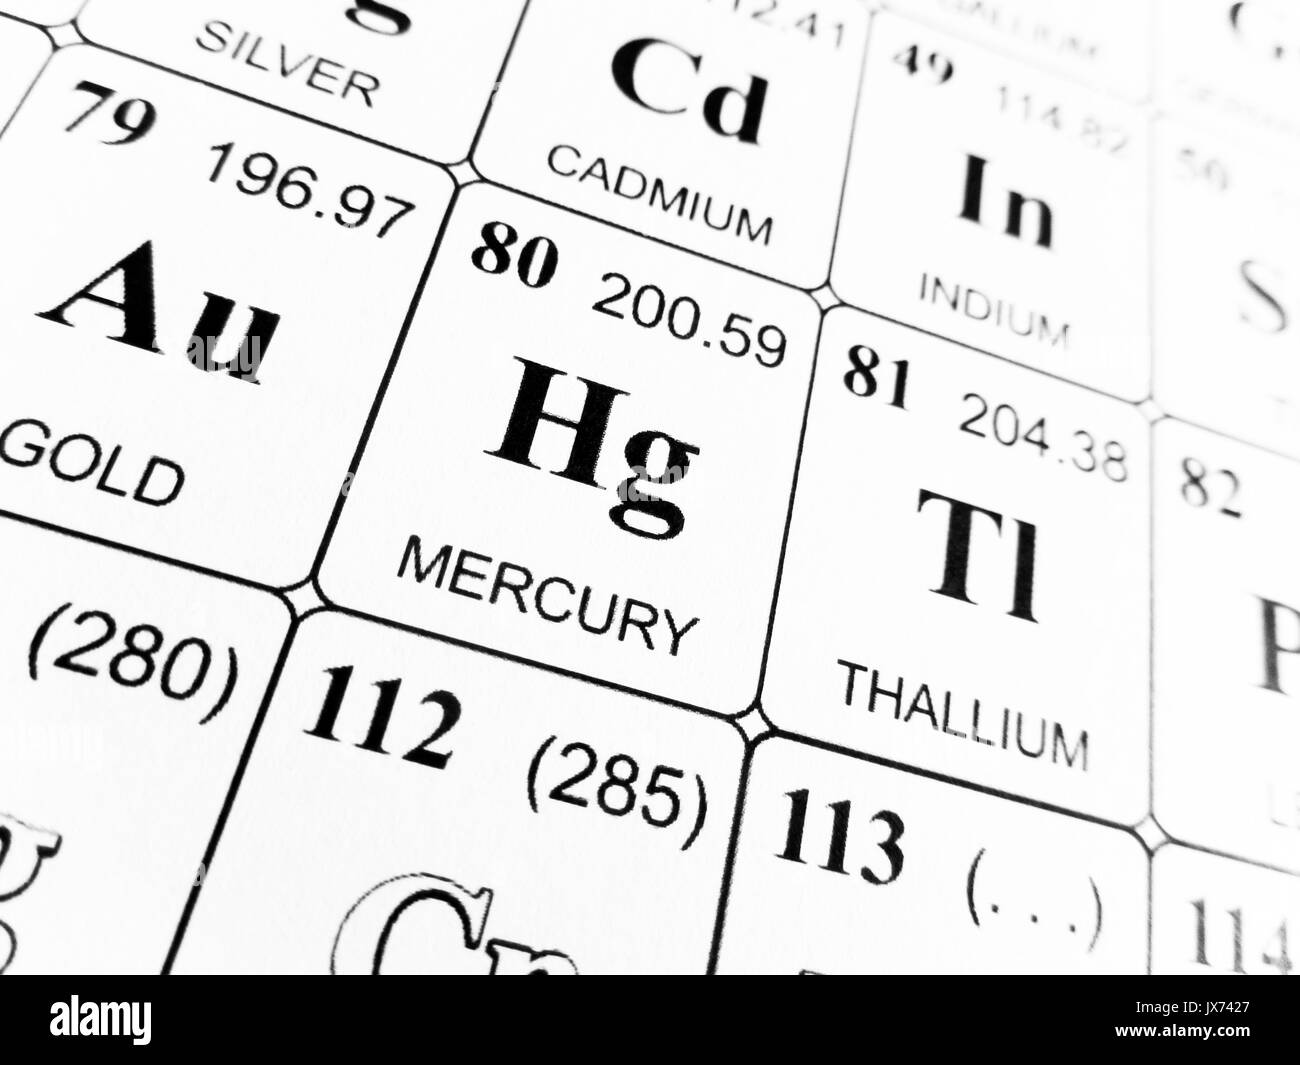 Mercury on the periodic table of the elements stock photo royalty mercury on the periodic table of the elements gamestrikefo Images